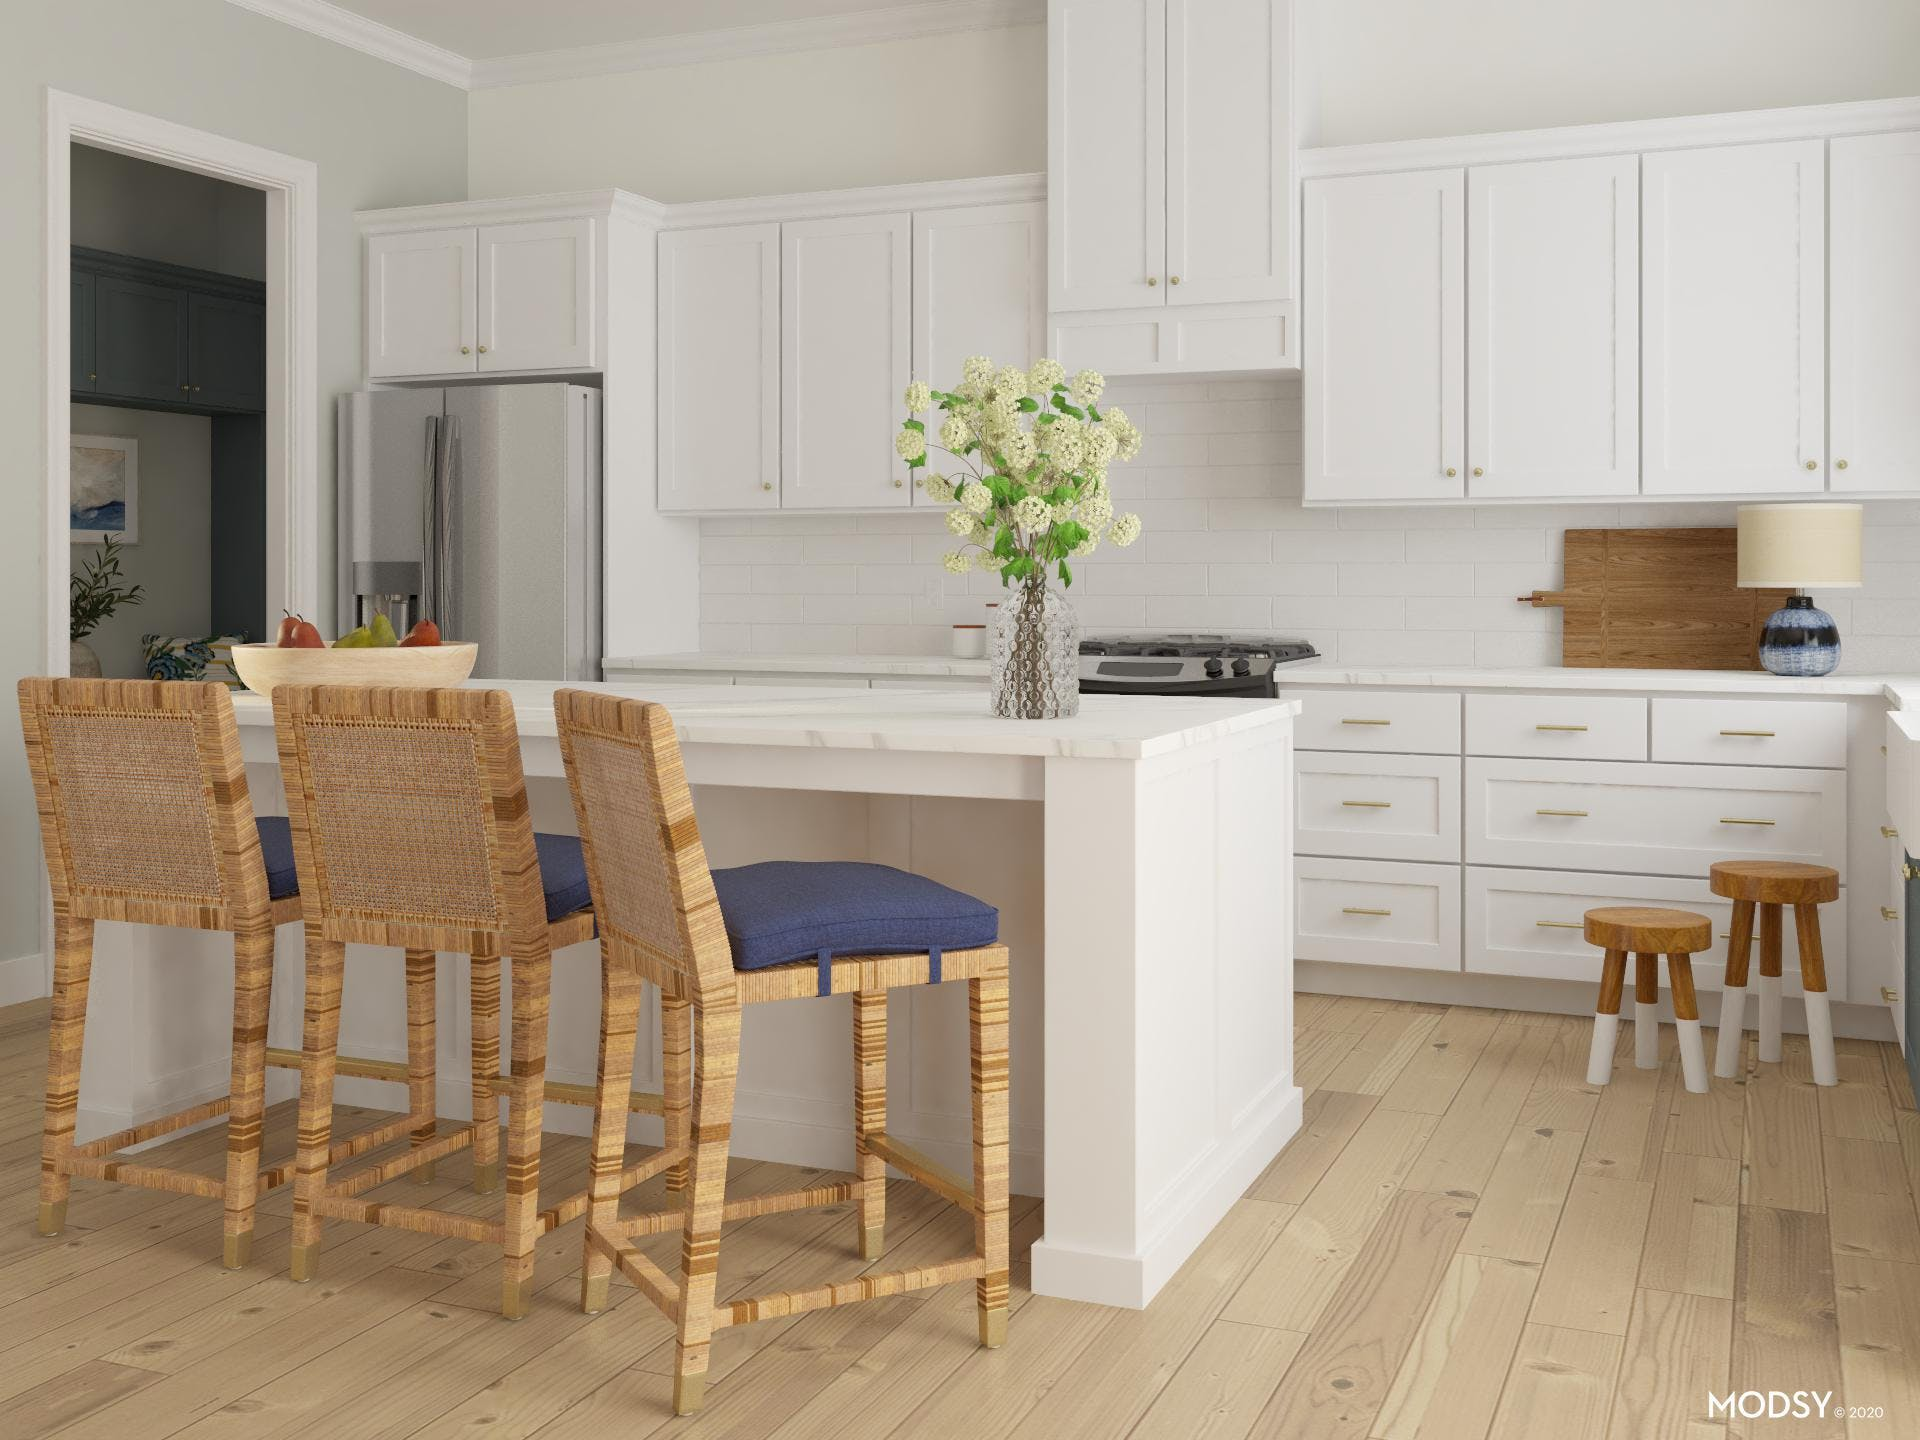 Scandinavian-style kitchen, white cabinets and light wood floors